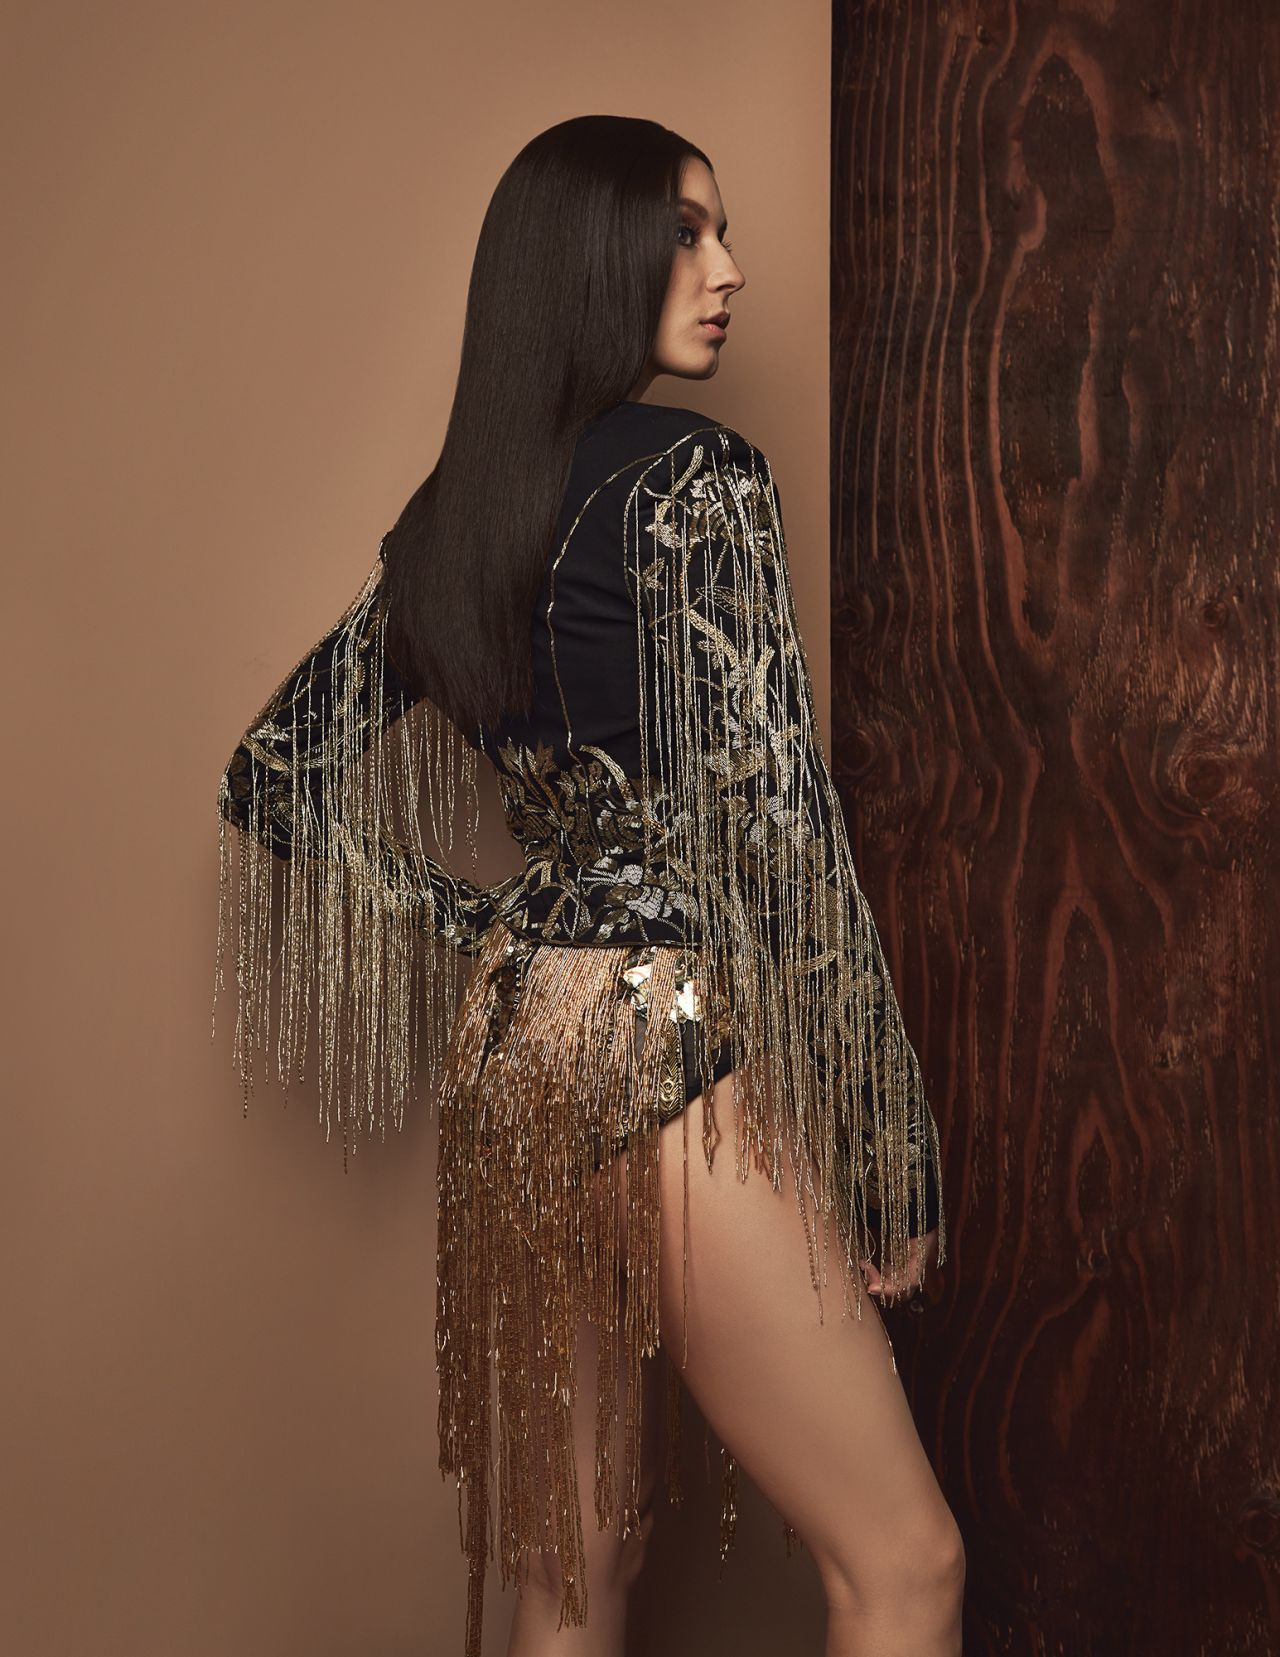 troian bellisario photoshoot for schon magazine